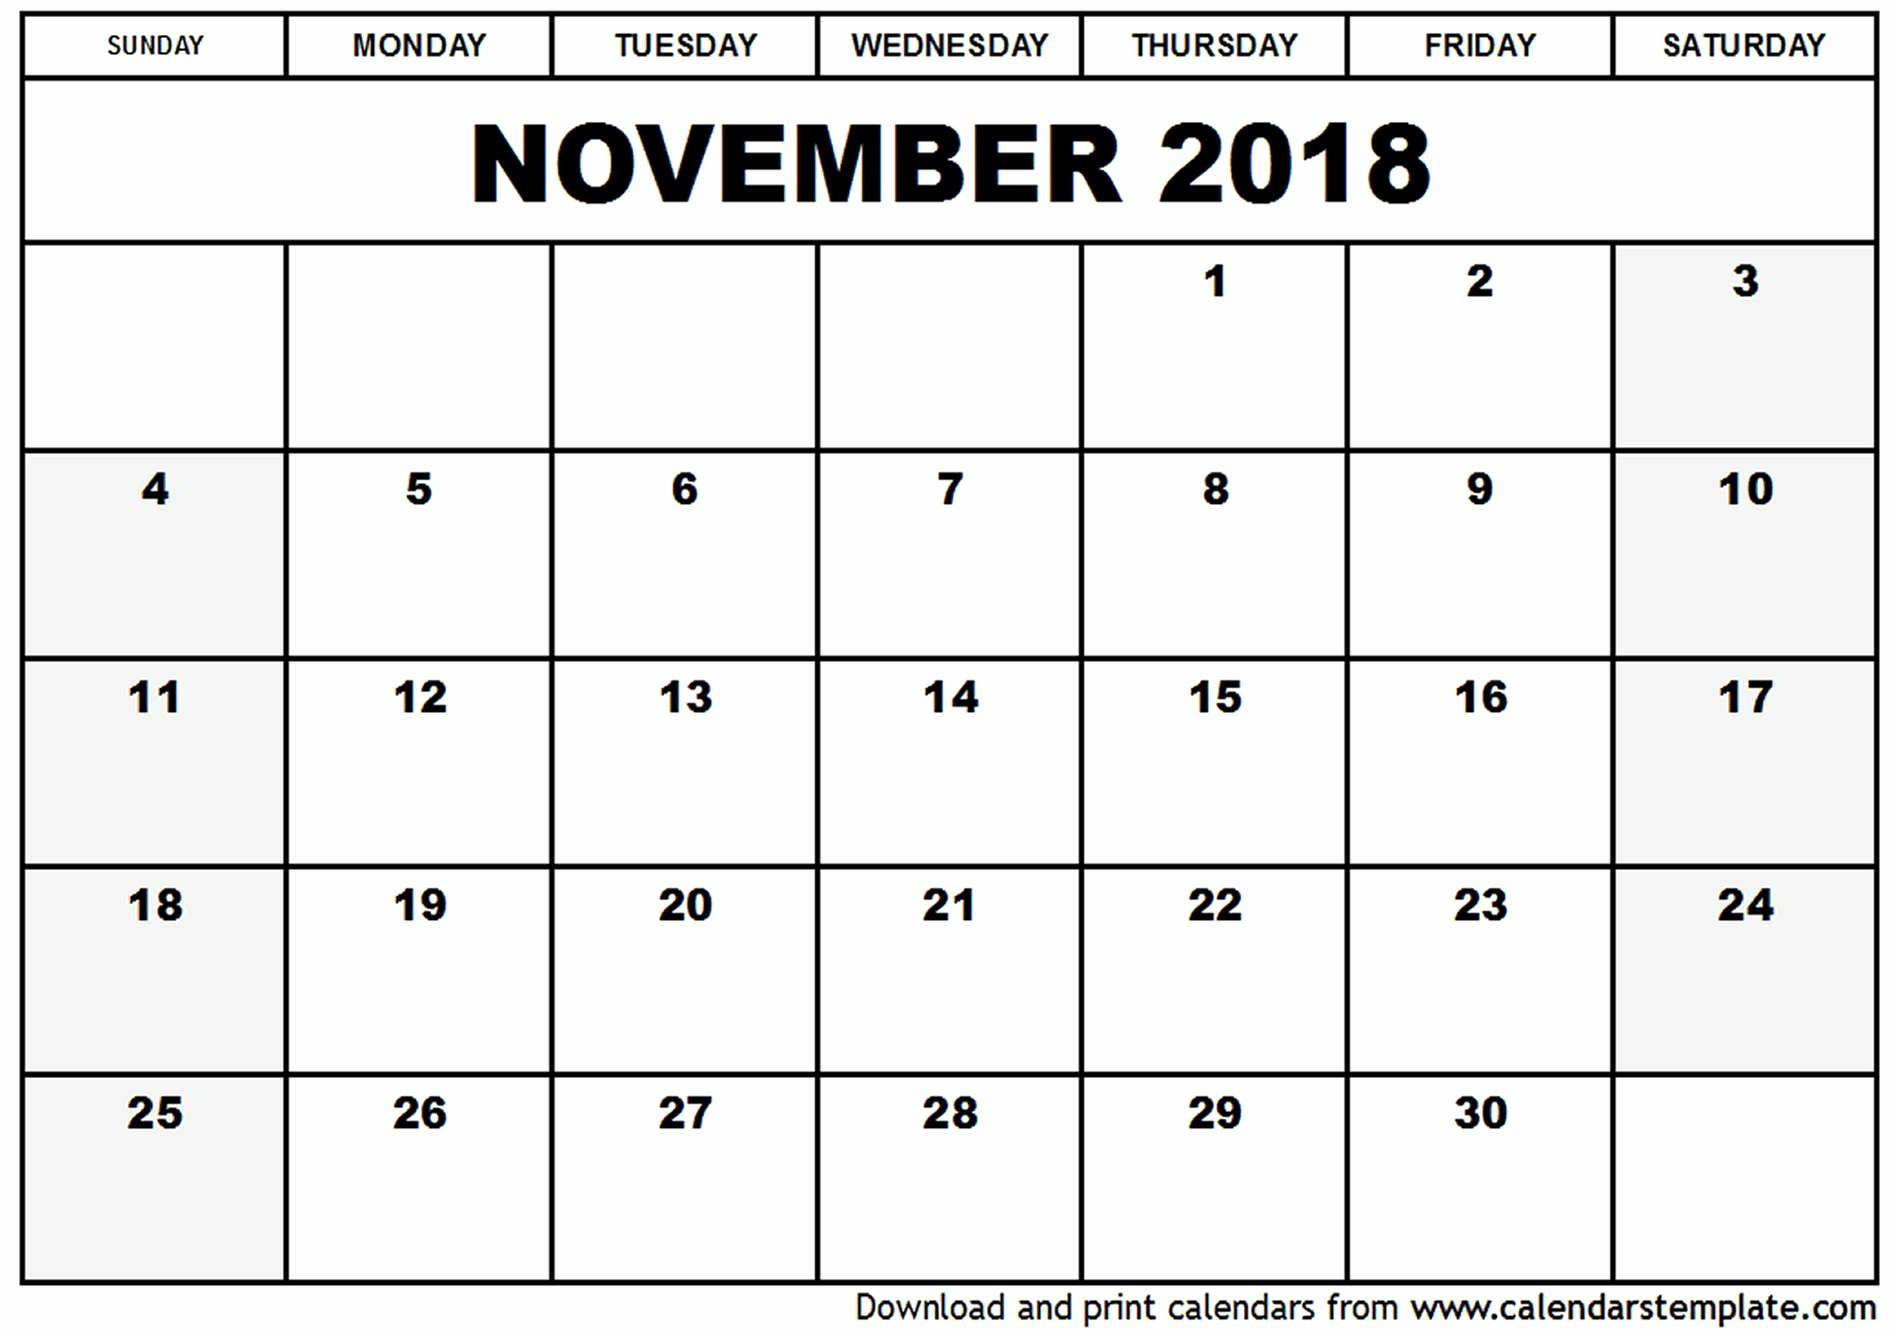 Free 2018 Monthly Calendar Template Lovely 2018 Monthly Calendars Printable 15 Free